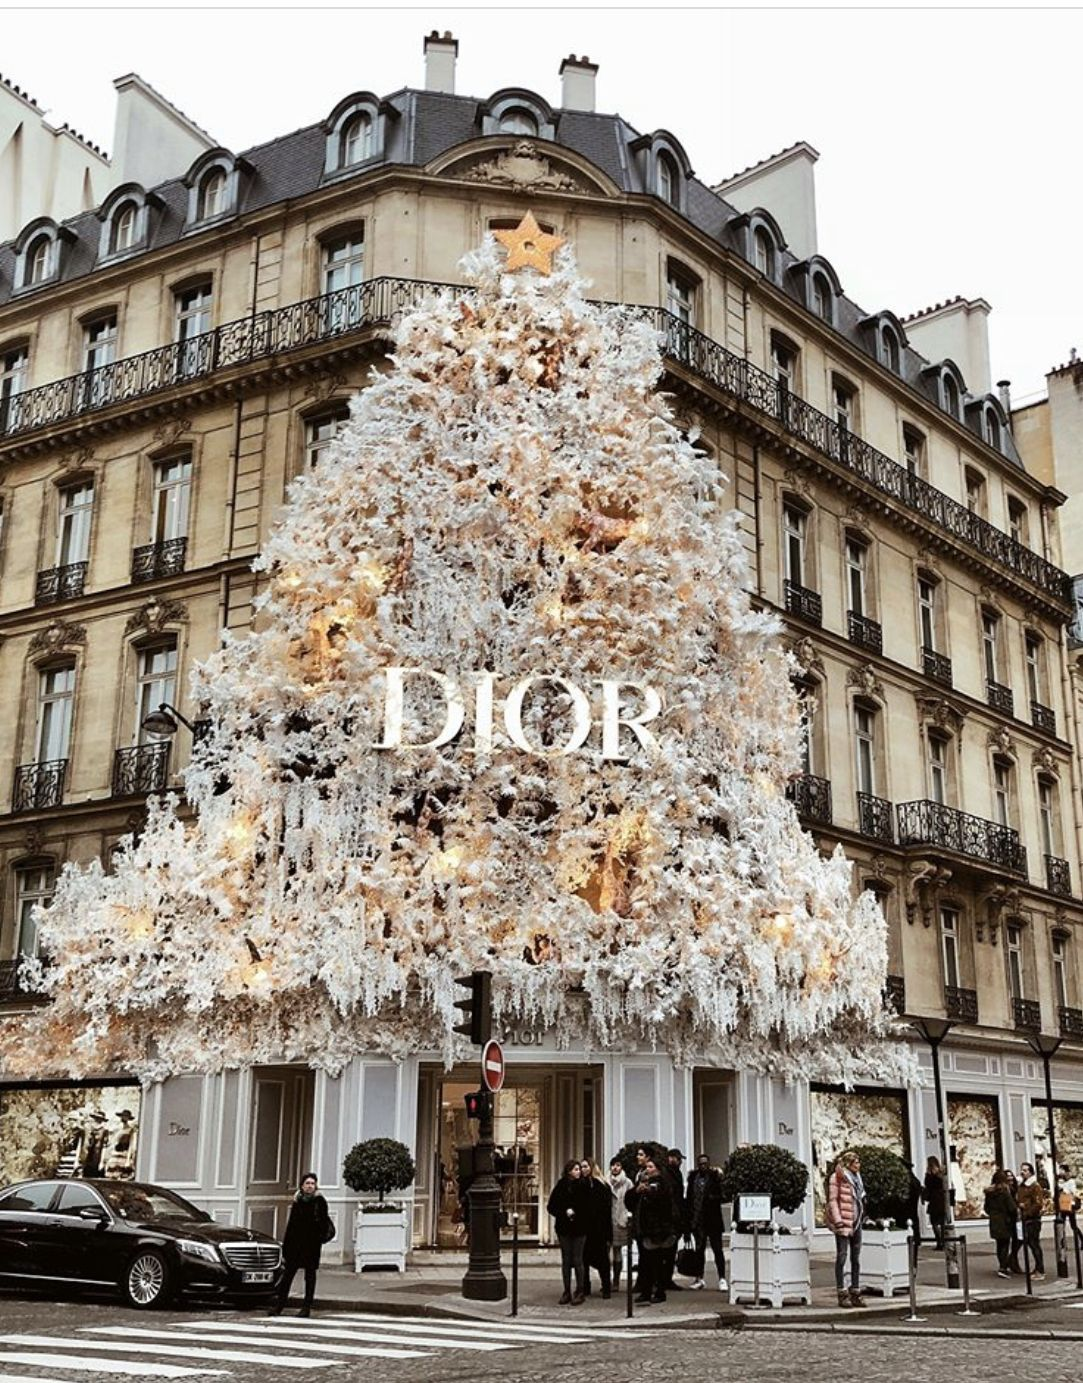 Dior Christmas Tree 2018 2019 Paris Boutique Boujee Aesthetic Luxury Store Christmas Aesthetic